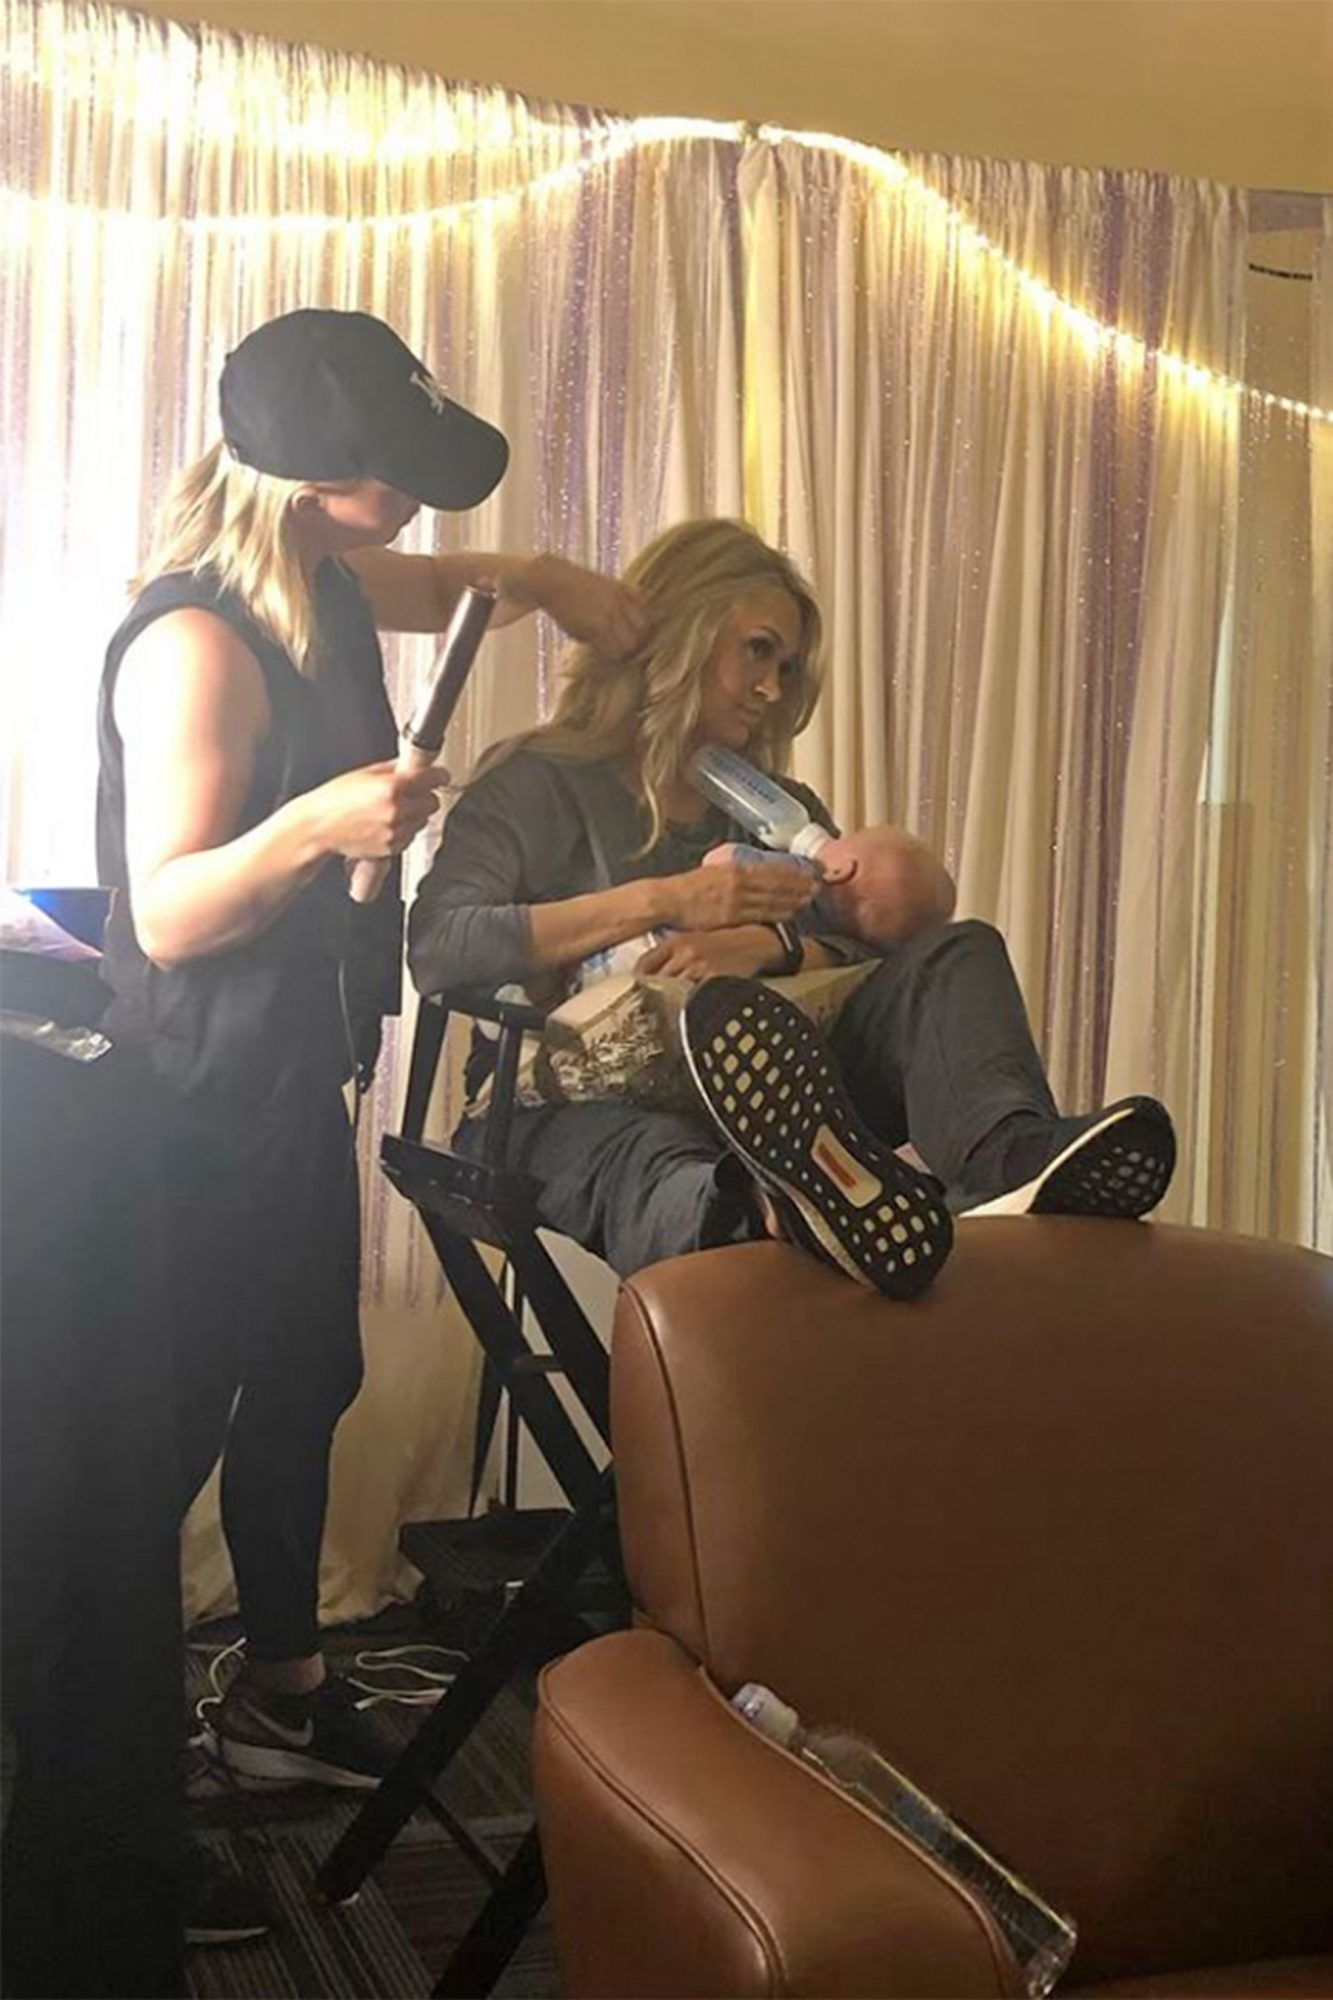 Carrie Underwood feeding baby ( mothers day post)